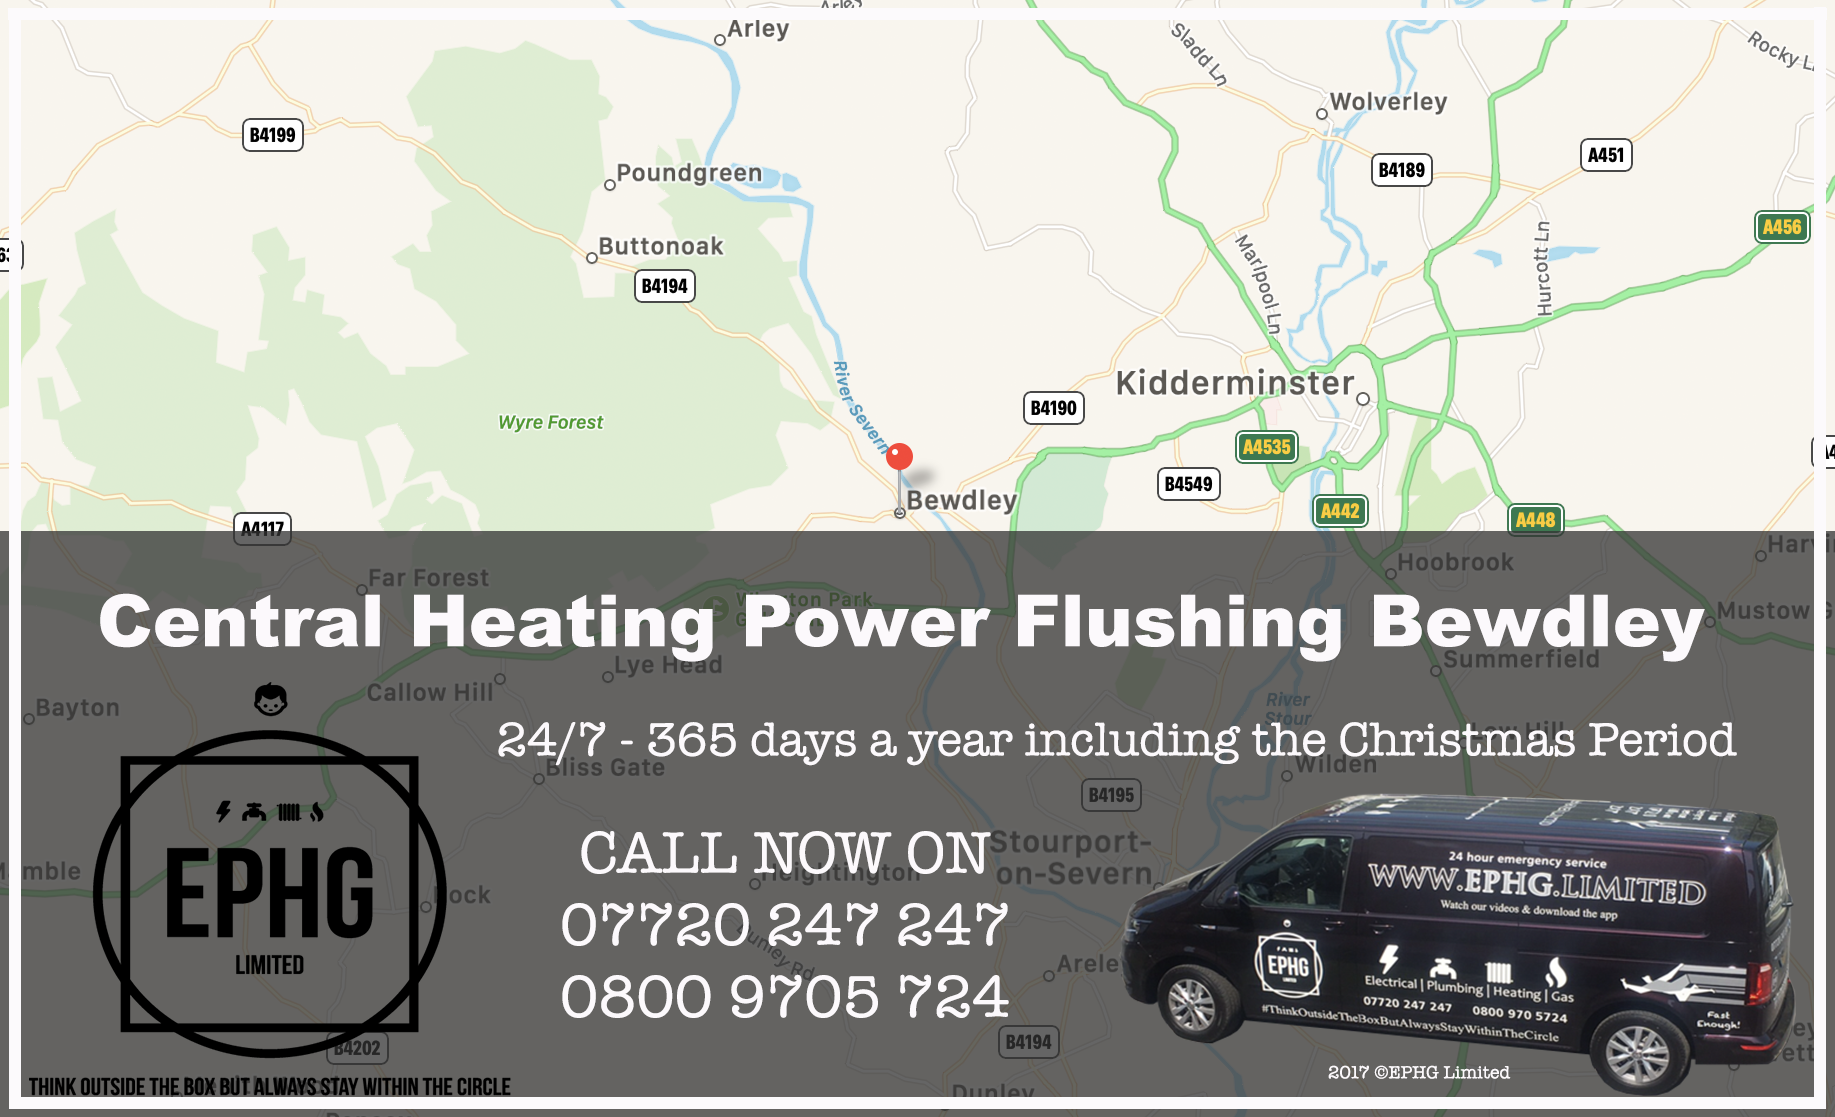 Central Heating Power Flush Bewdley